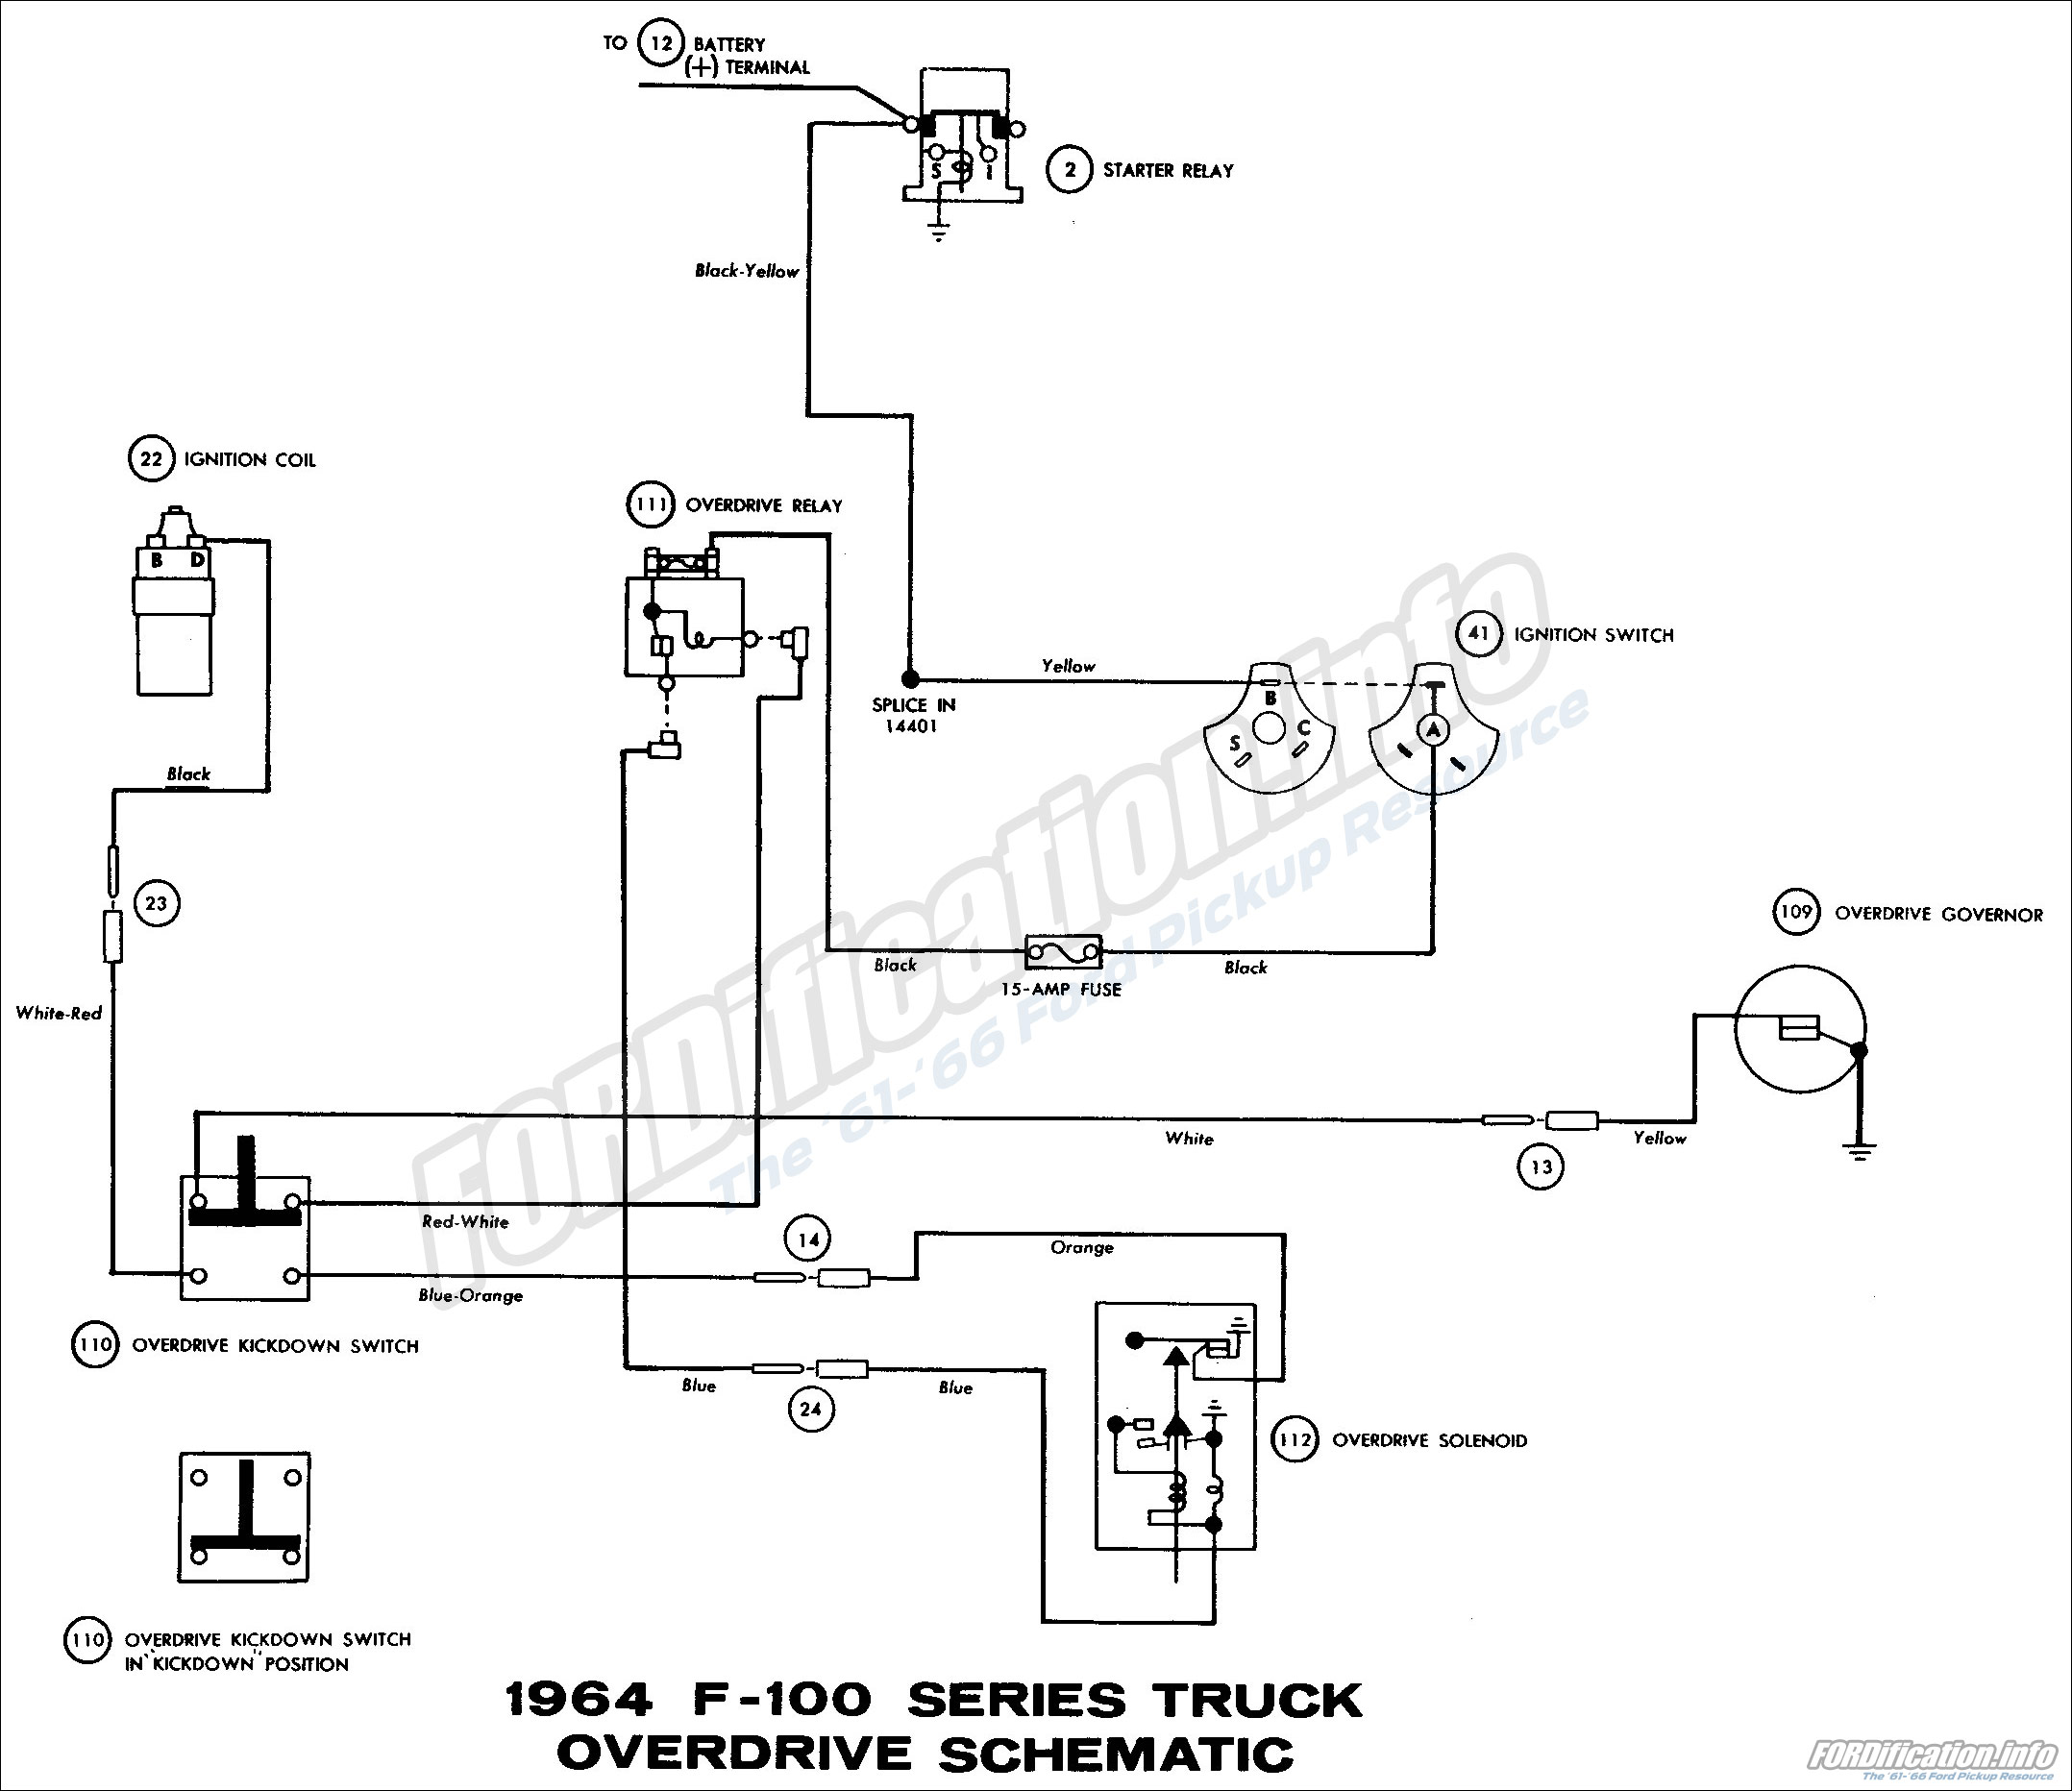 1964 ford truck wiring diagrams fordification info the 65 Ford Truck 59 Ford Truck